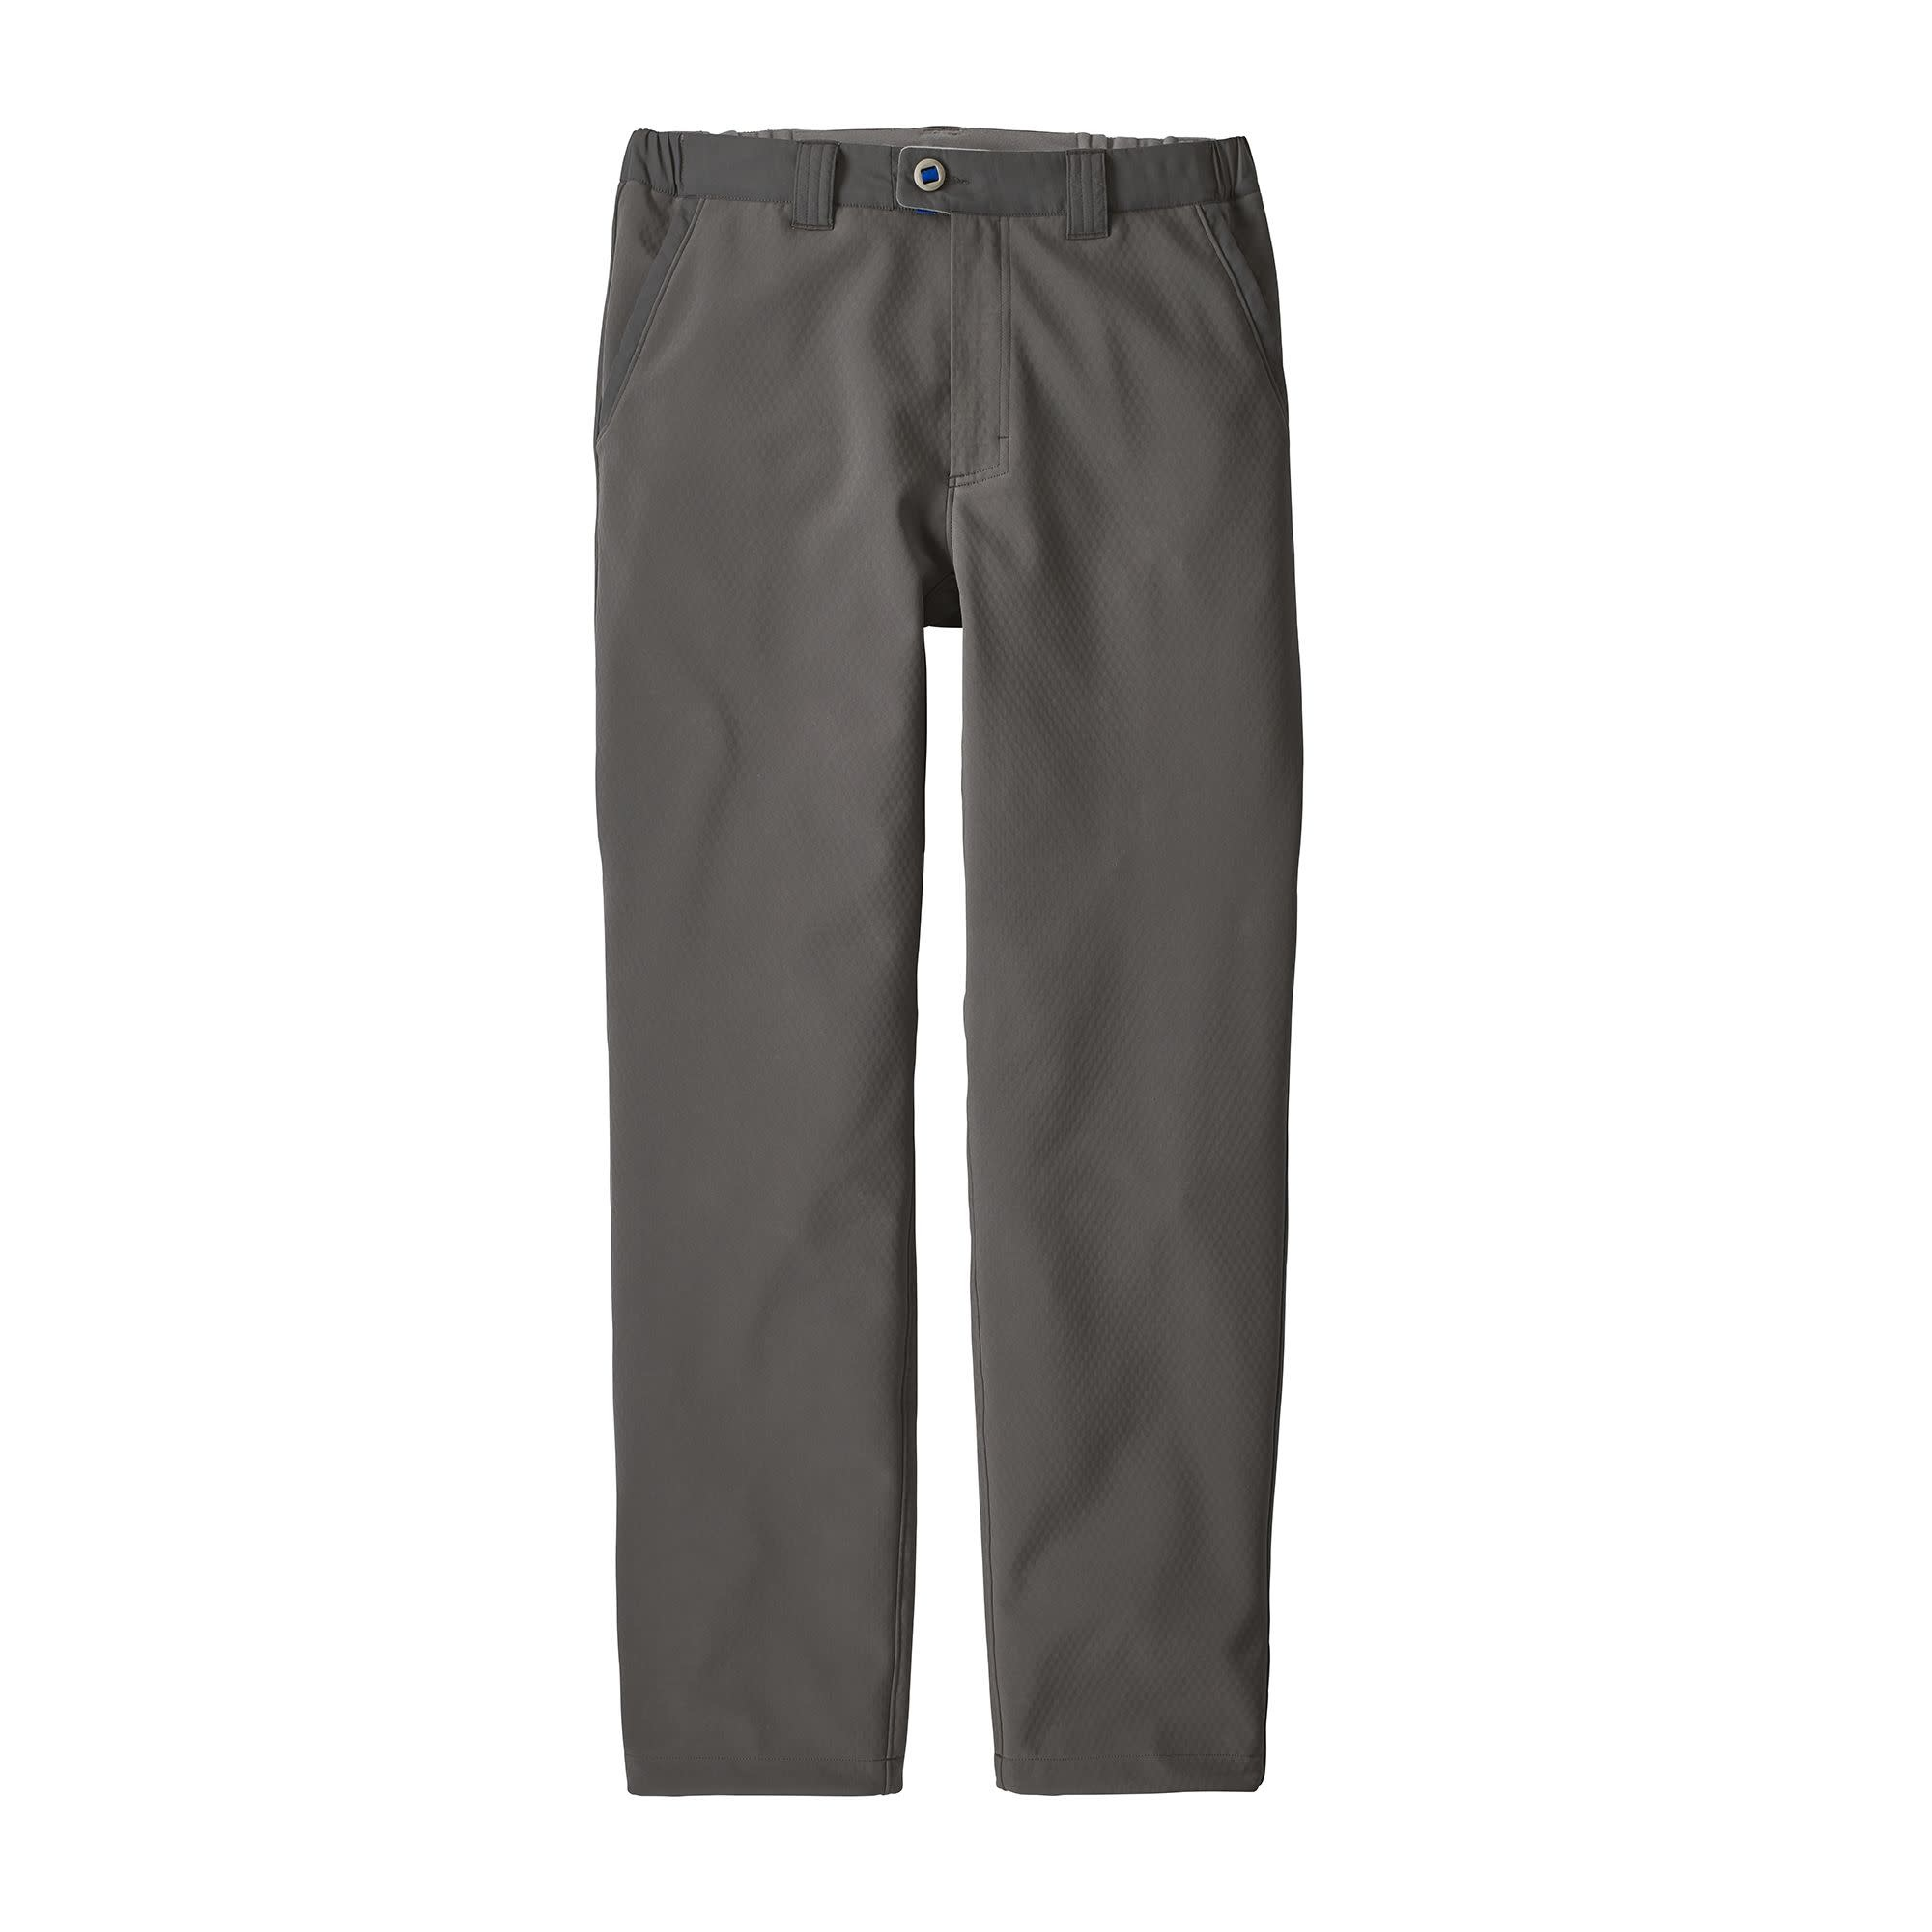 Patagonia Patagonia Shelled Insulator Pants